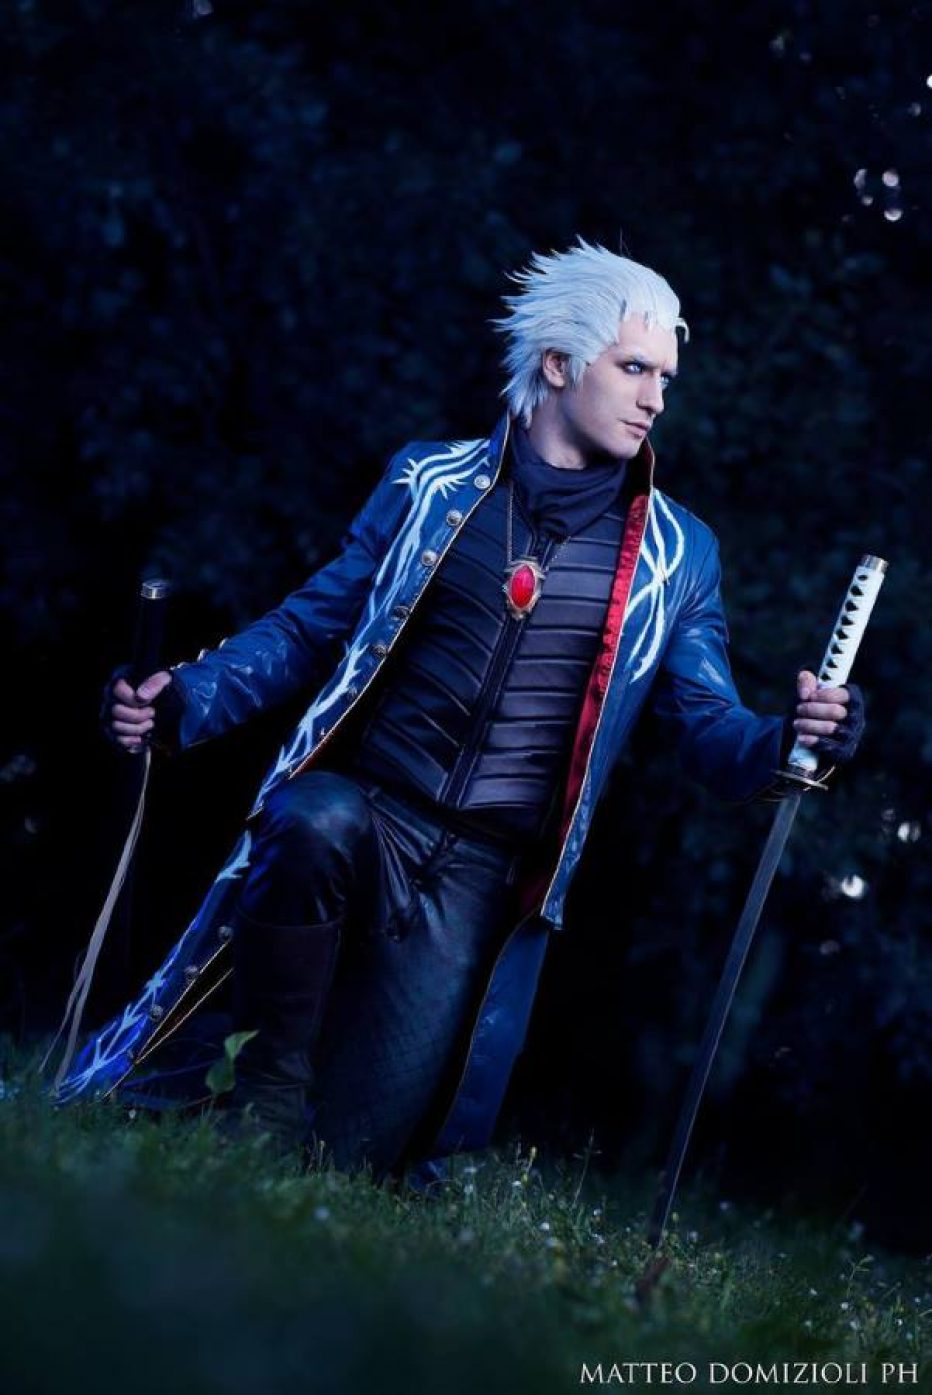 Devil May Cry Wallpaper Hd Cosplay Wednesday Devil May Cry S Vergil Gamersheroes